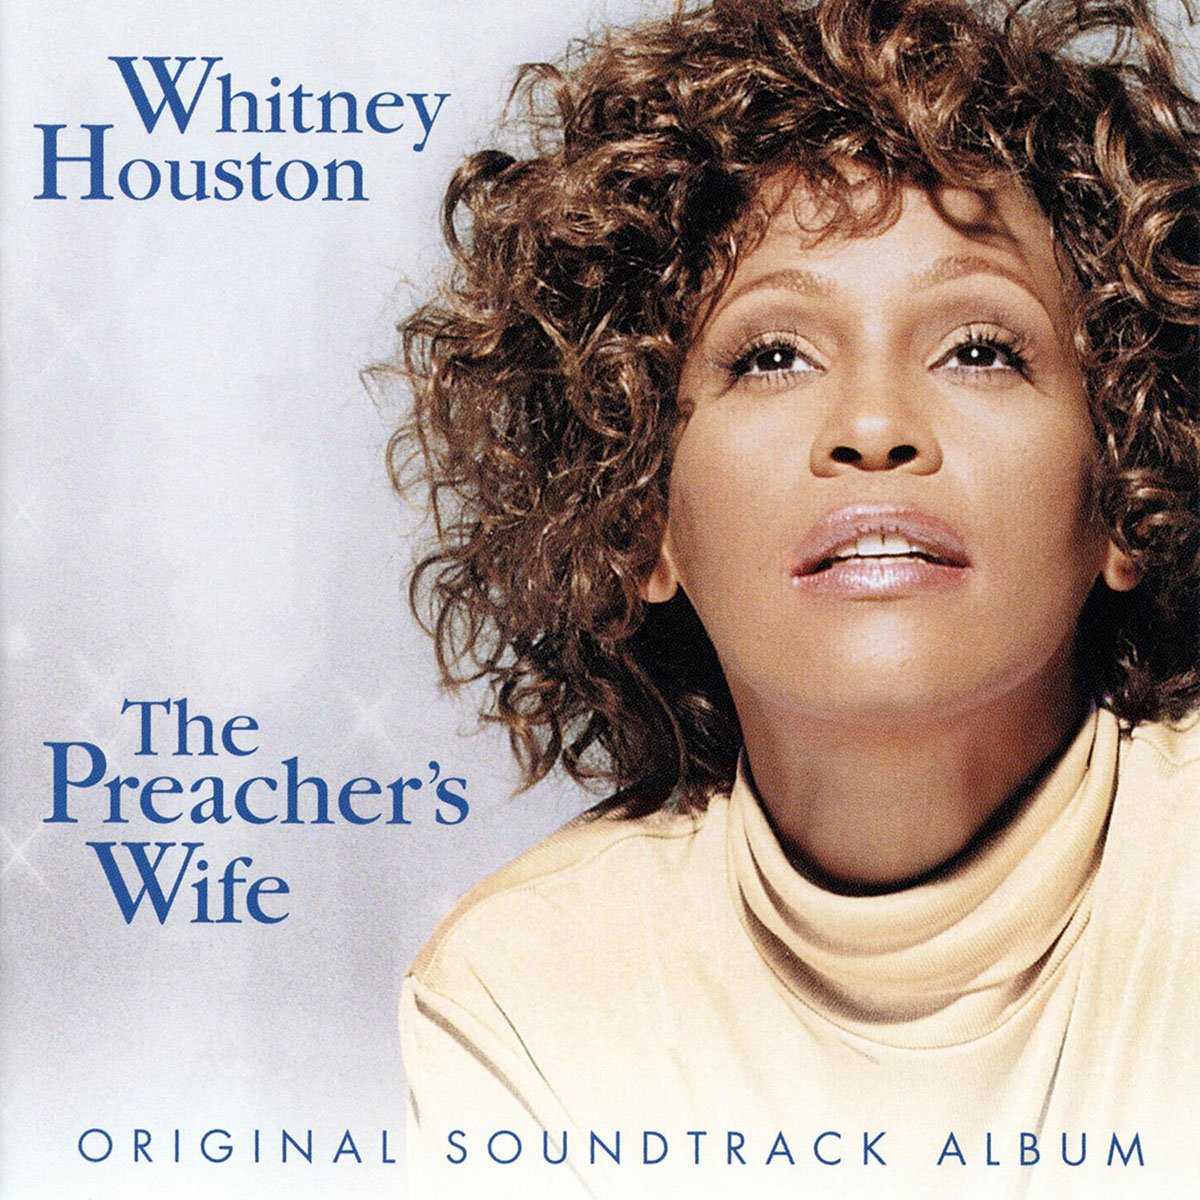 Whitney Houston - The Preacher's Wife: Original Soundtrack Album alternate cover